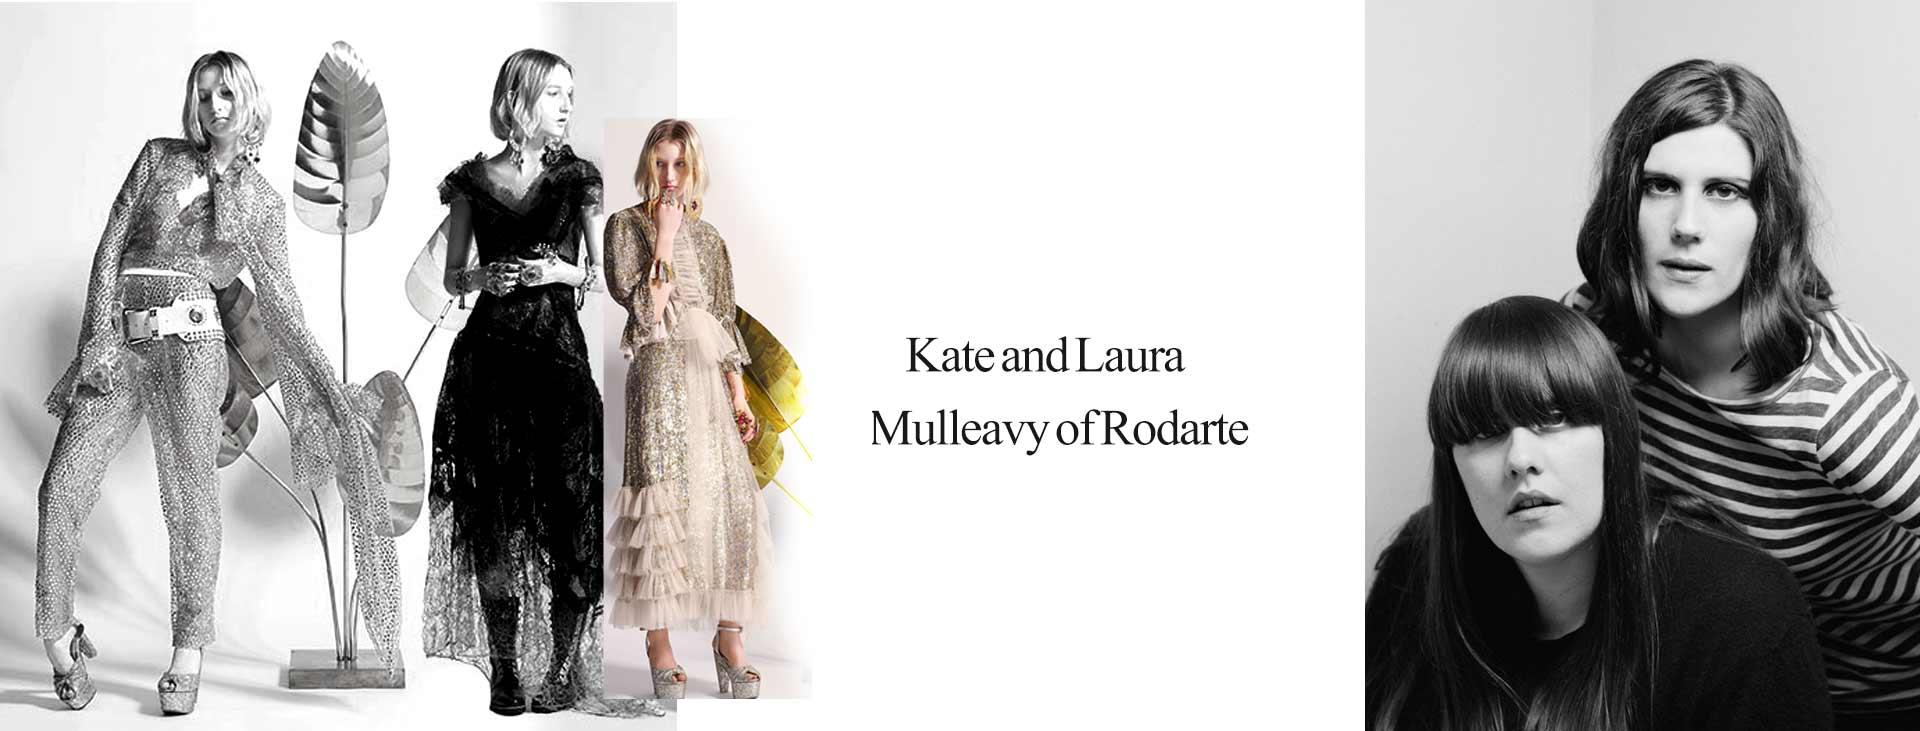 Kate and Laura Mulleavy of Rodarte 1 - زنان پیشگام در صنعت مد